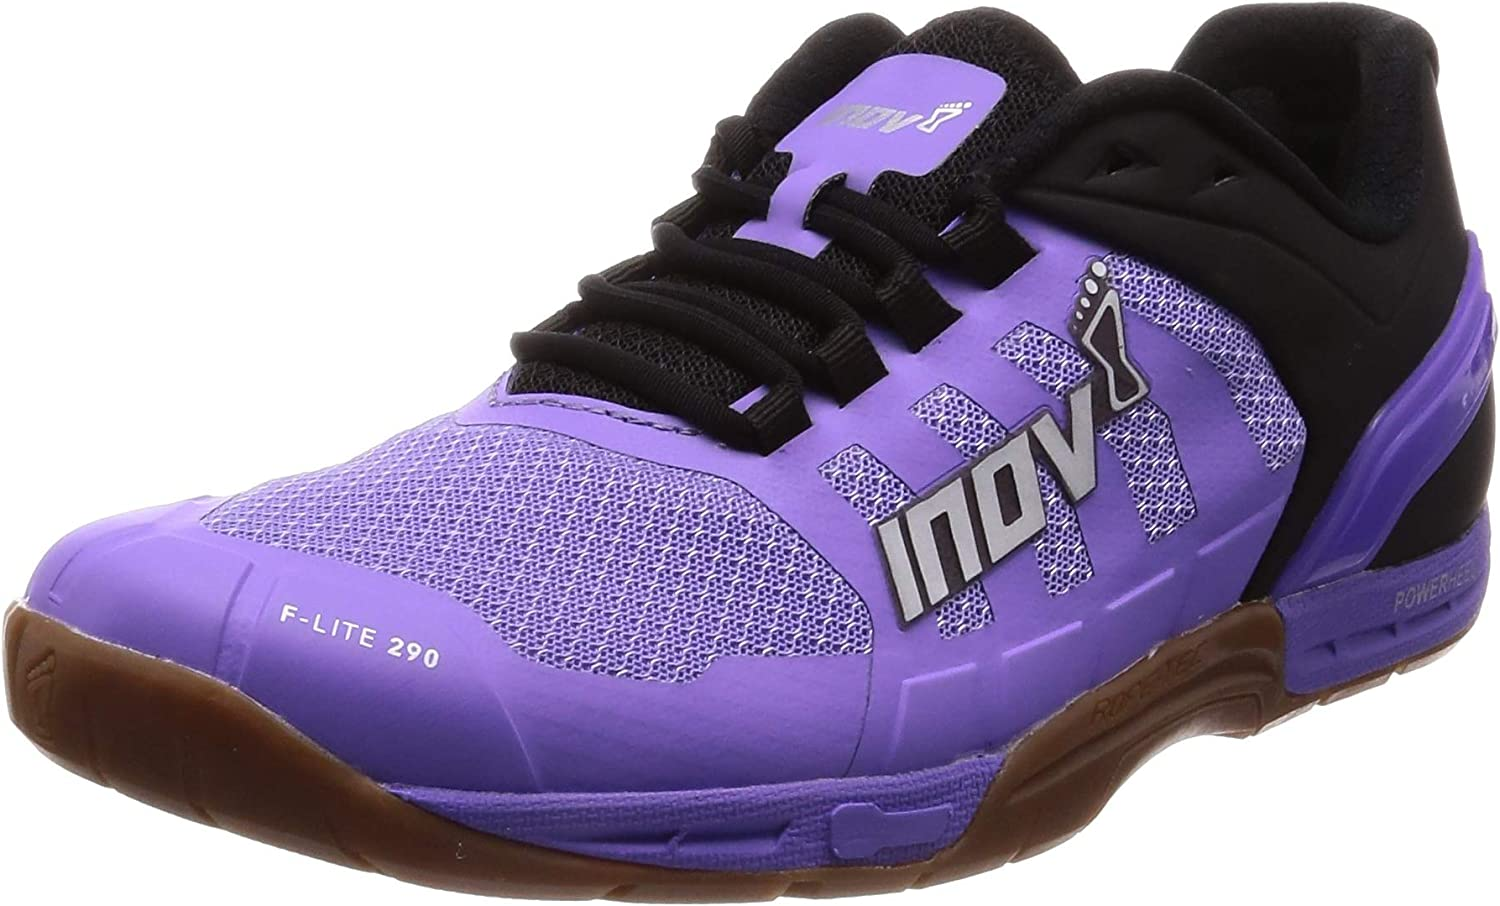 Inov-8 Womens F-Lite 290 - Ultimate Cross Training Shoes - Power Heel - Performance Trainer for Gym and Weight Lifting